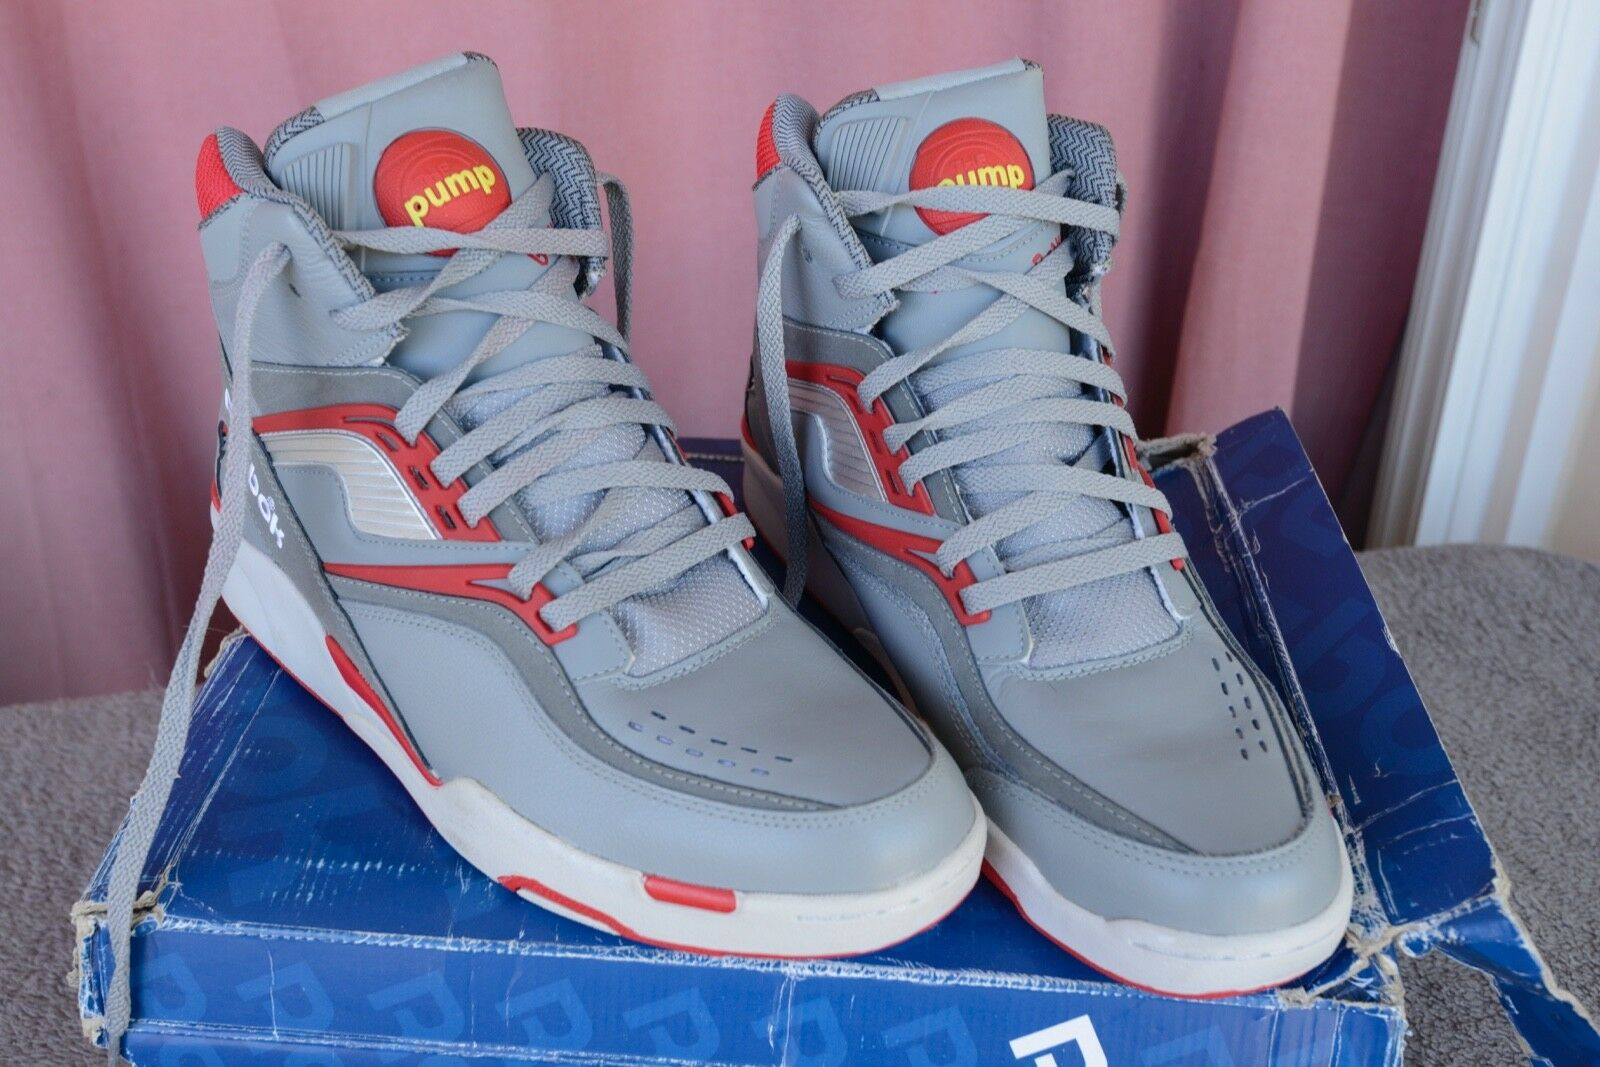 57dc69aad74b Reebok pump twilight zone dominic wilkins V45066 sz 13US 13US 13US 47FR  12UK 9a8fa7